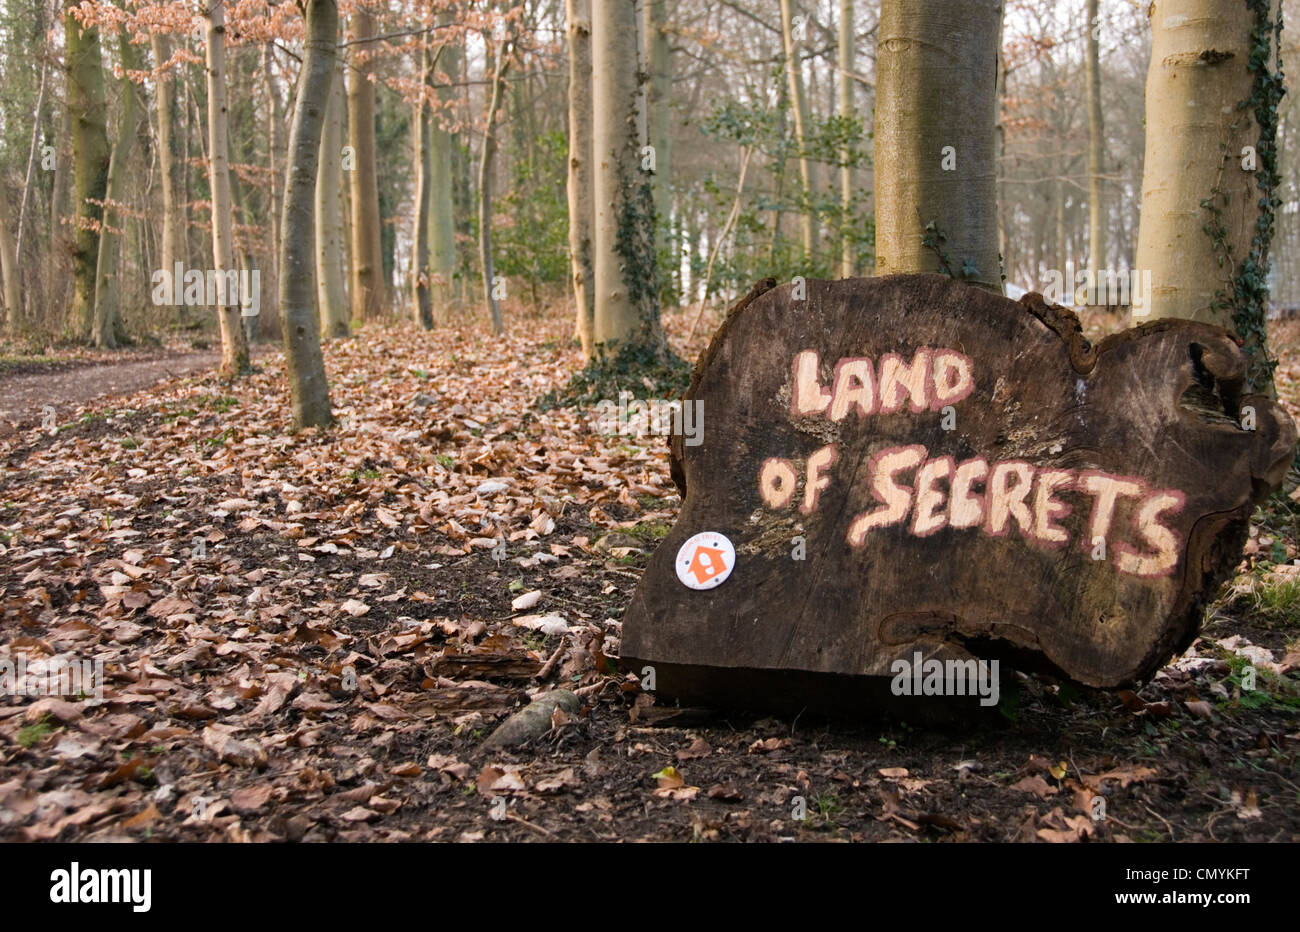 Land of Secrets - woodland footpath sign - with an air of mystery and youthful excitement - adventure. - Stock Image